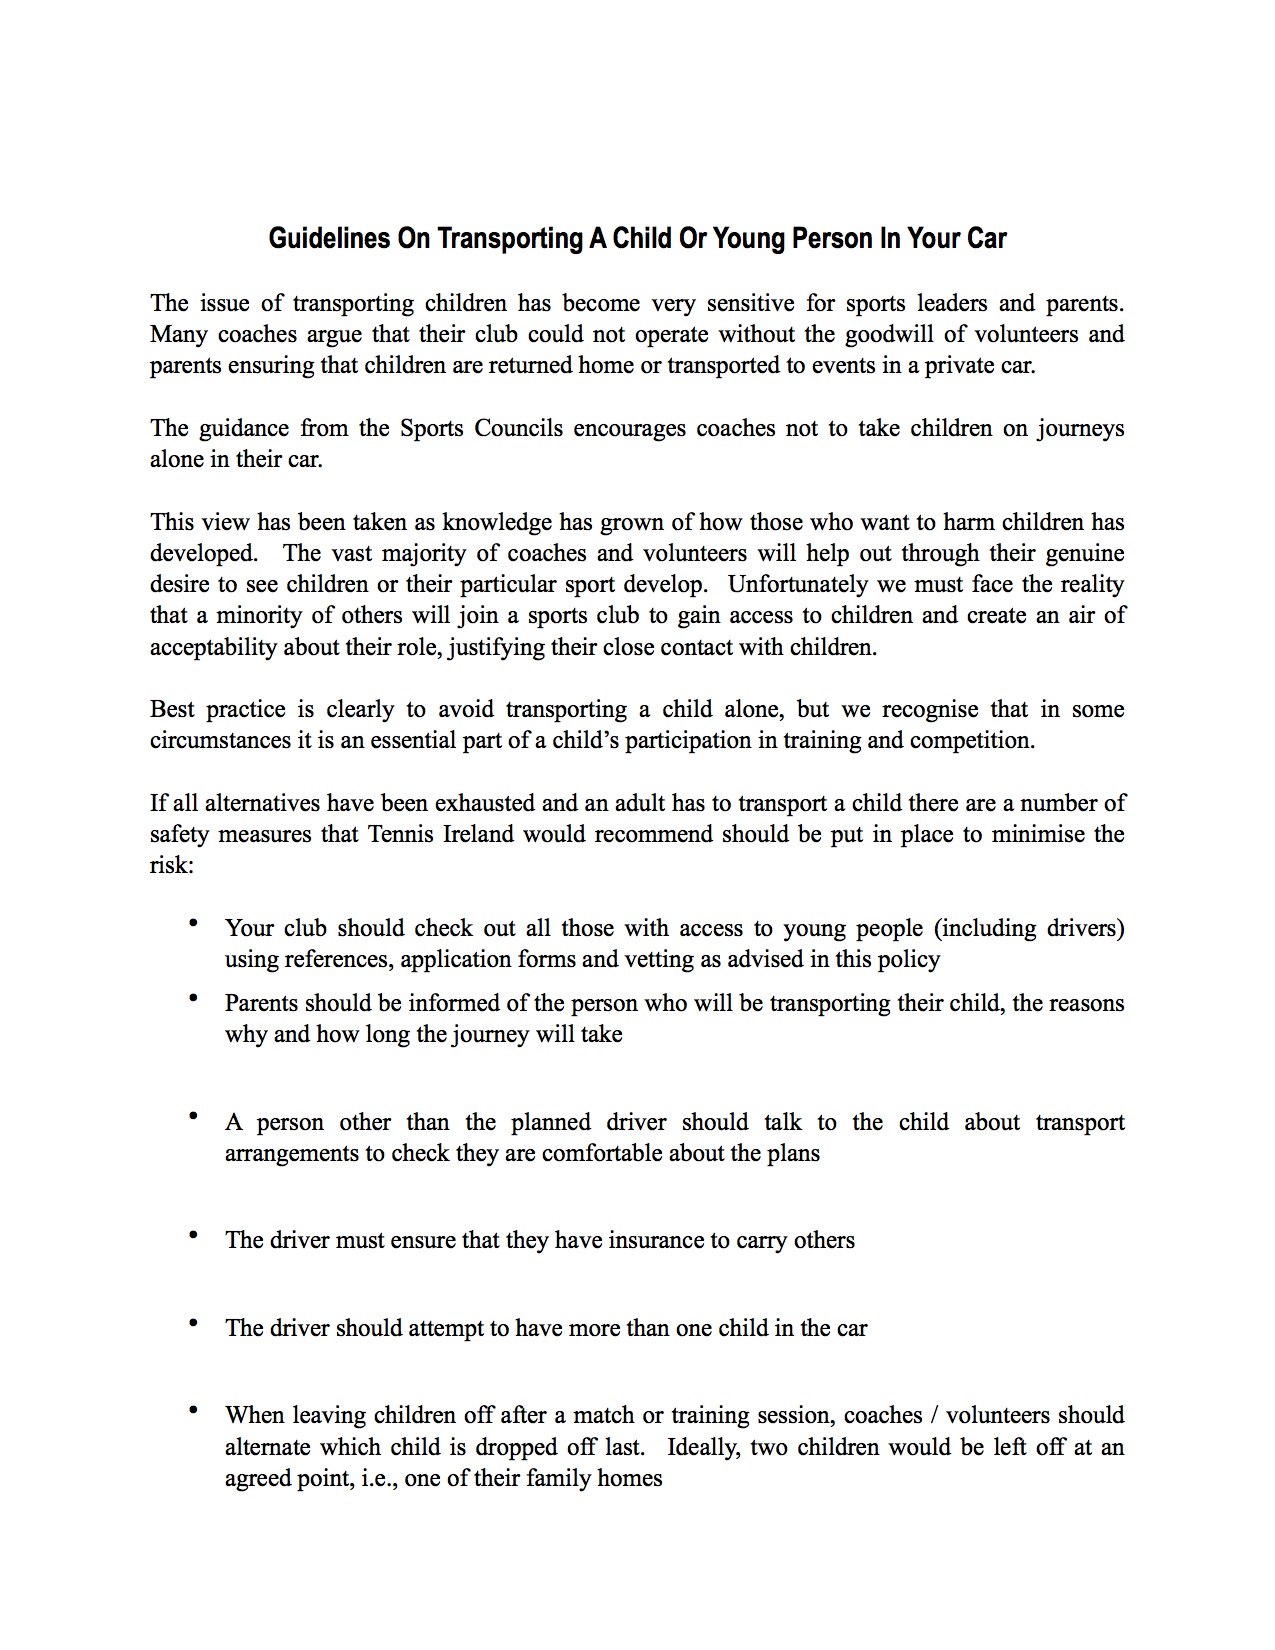 Transporting-Children-In-Your-Car